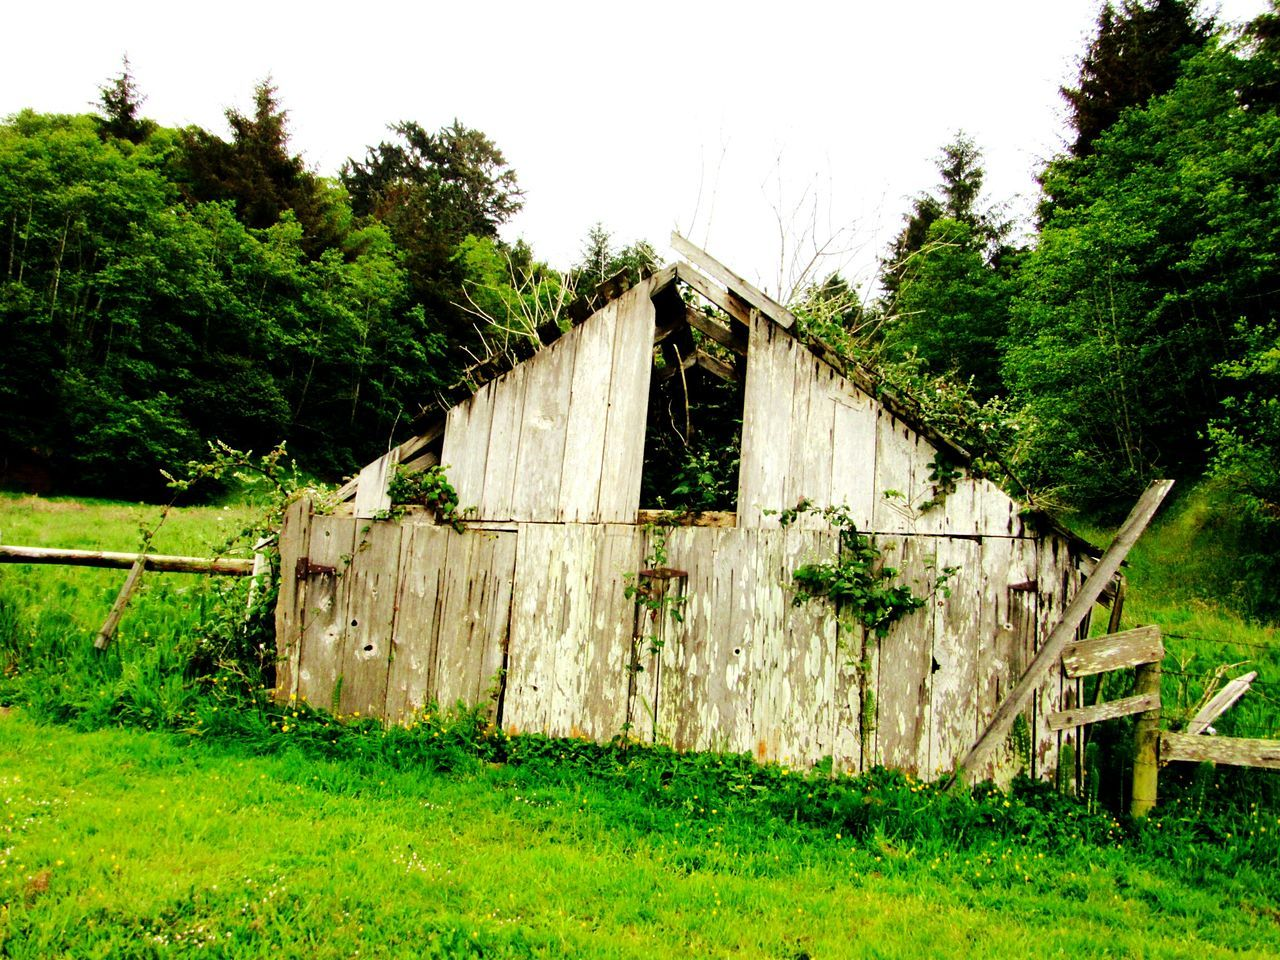 Abandoned Wooden House On Field